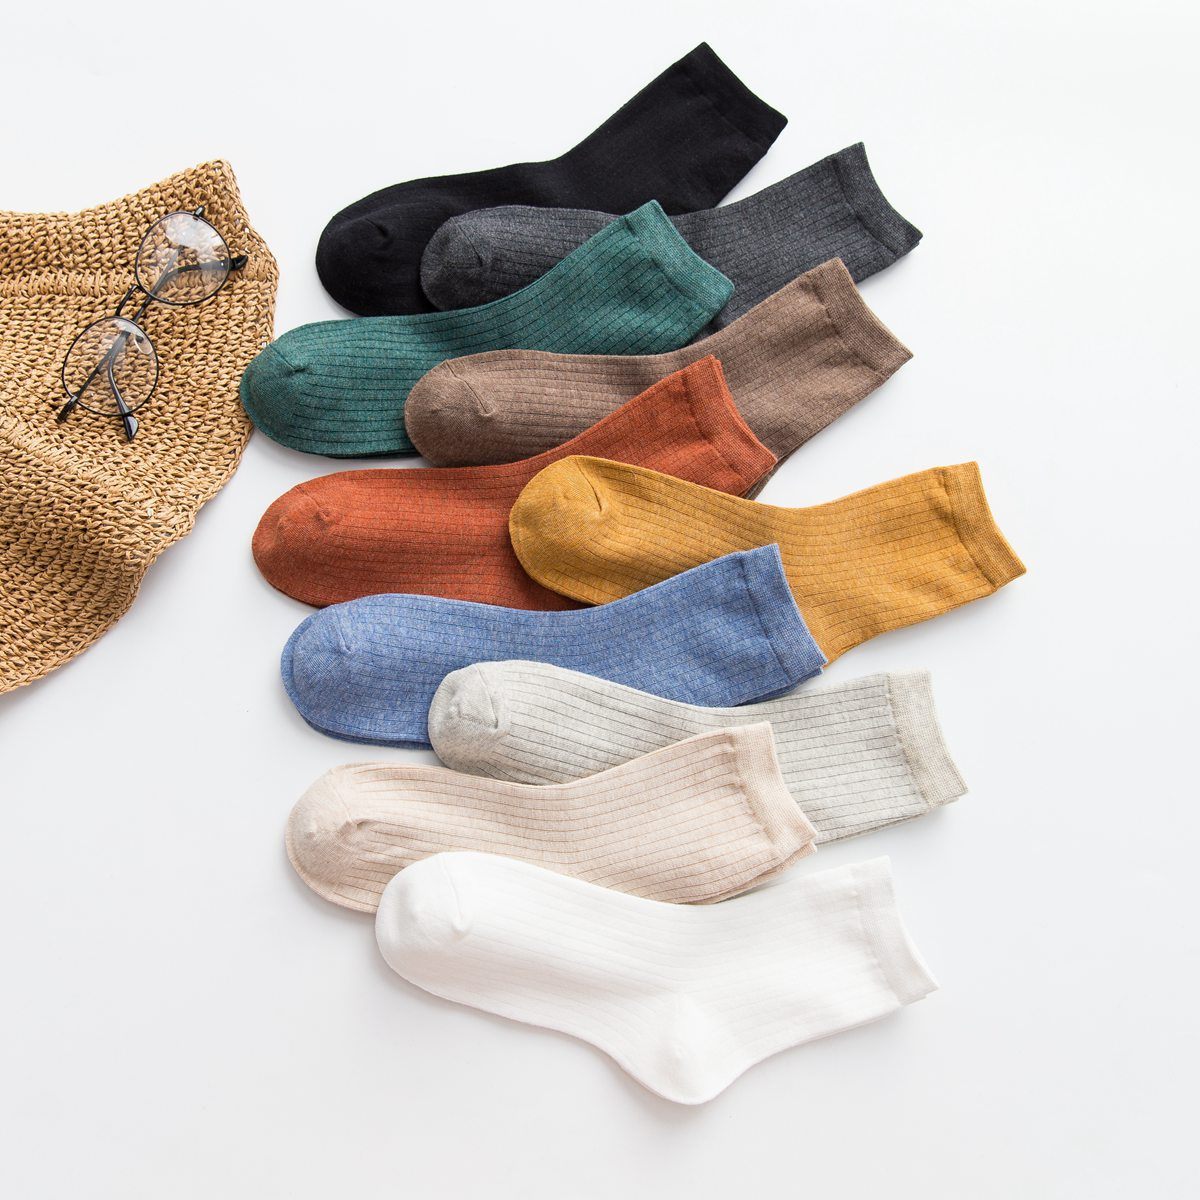 Cotton female tube socks pure color brand double-needle Japanese female socks cotton manufacturers socks wholesale a generation